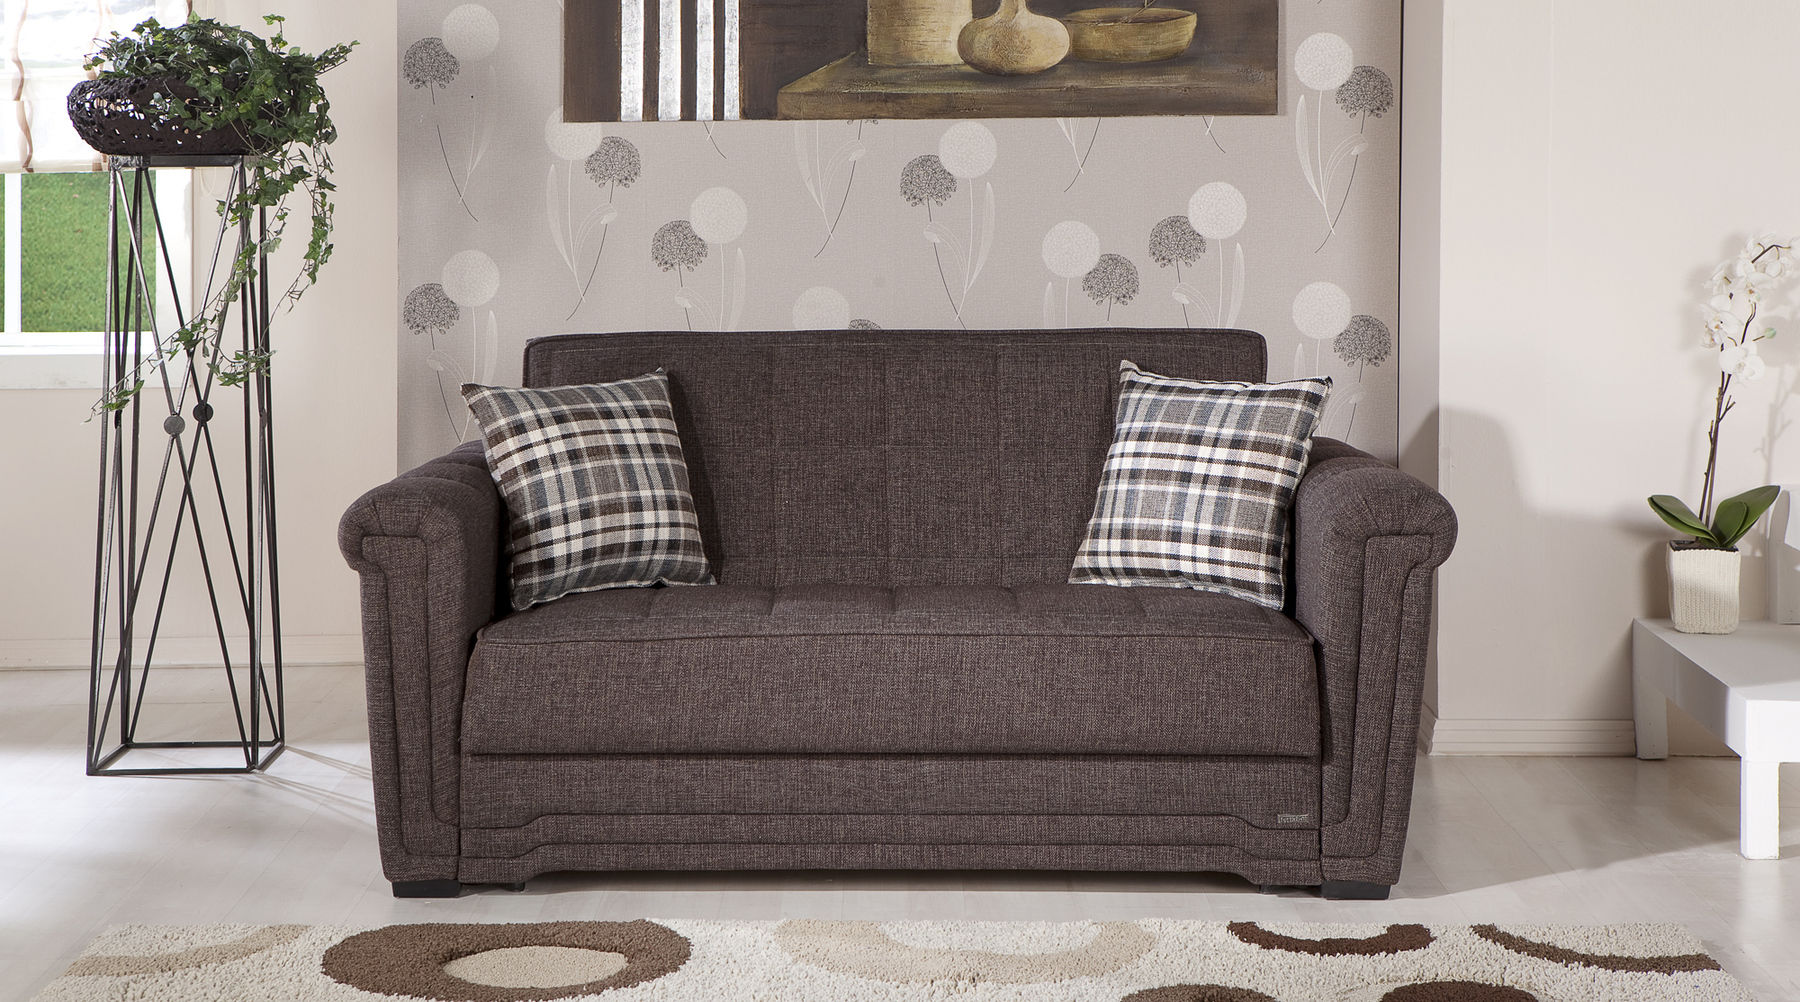 Fabulous Victoria Brown Sofa Bed Andrewgaddart Wooden Chair Designs For Living Room Andrewgaddartcom